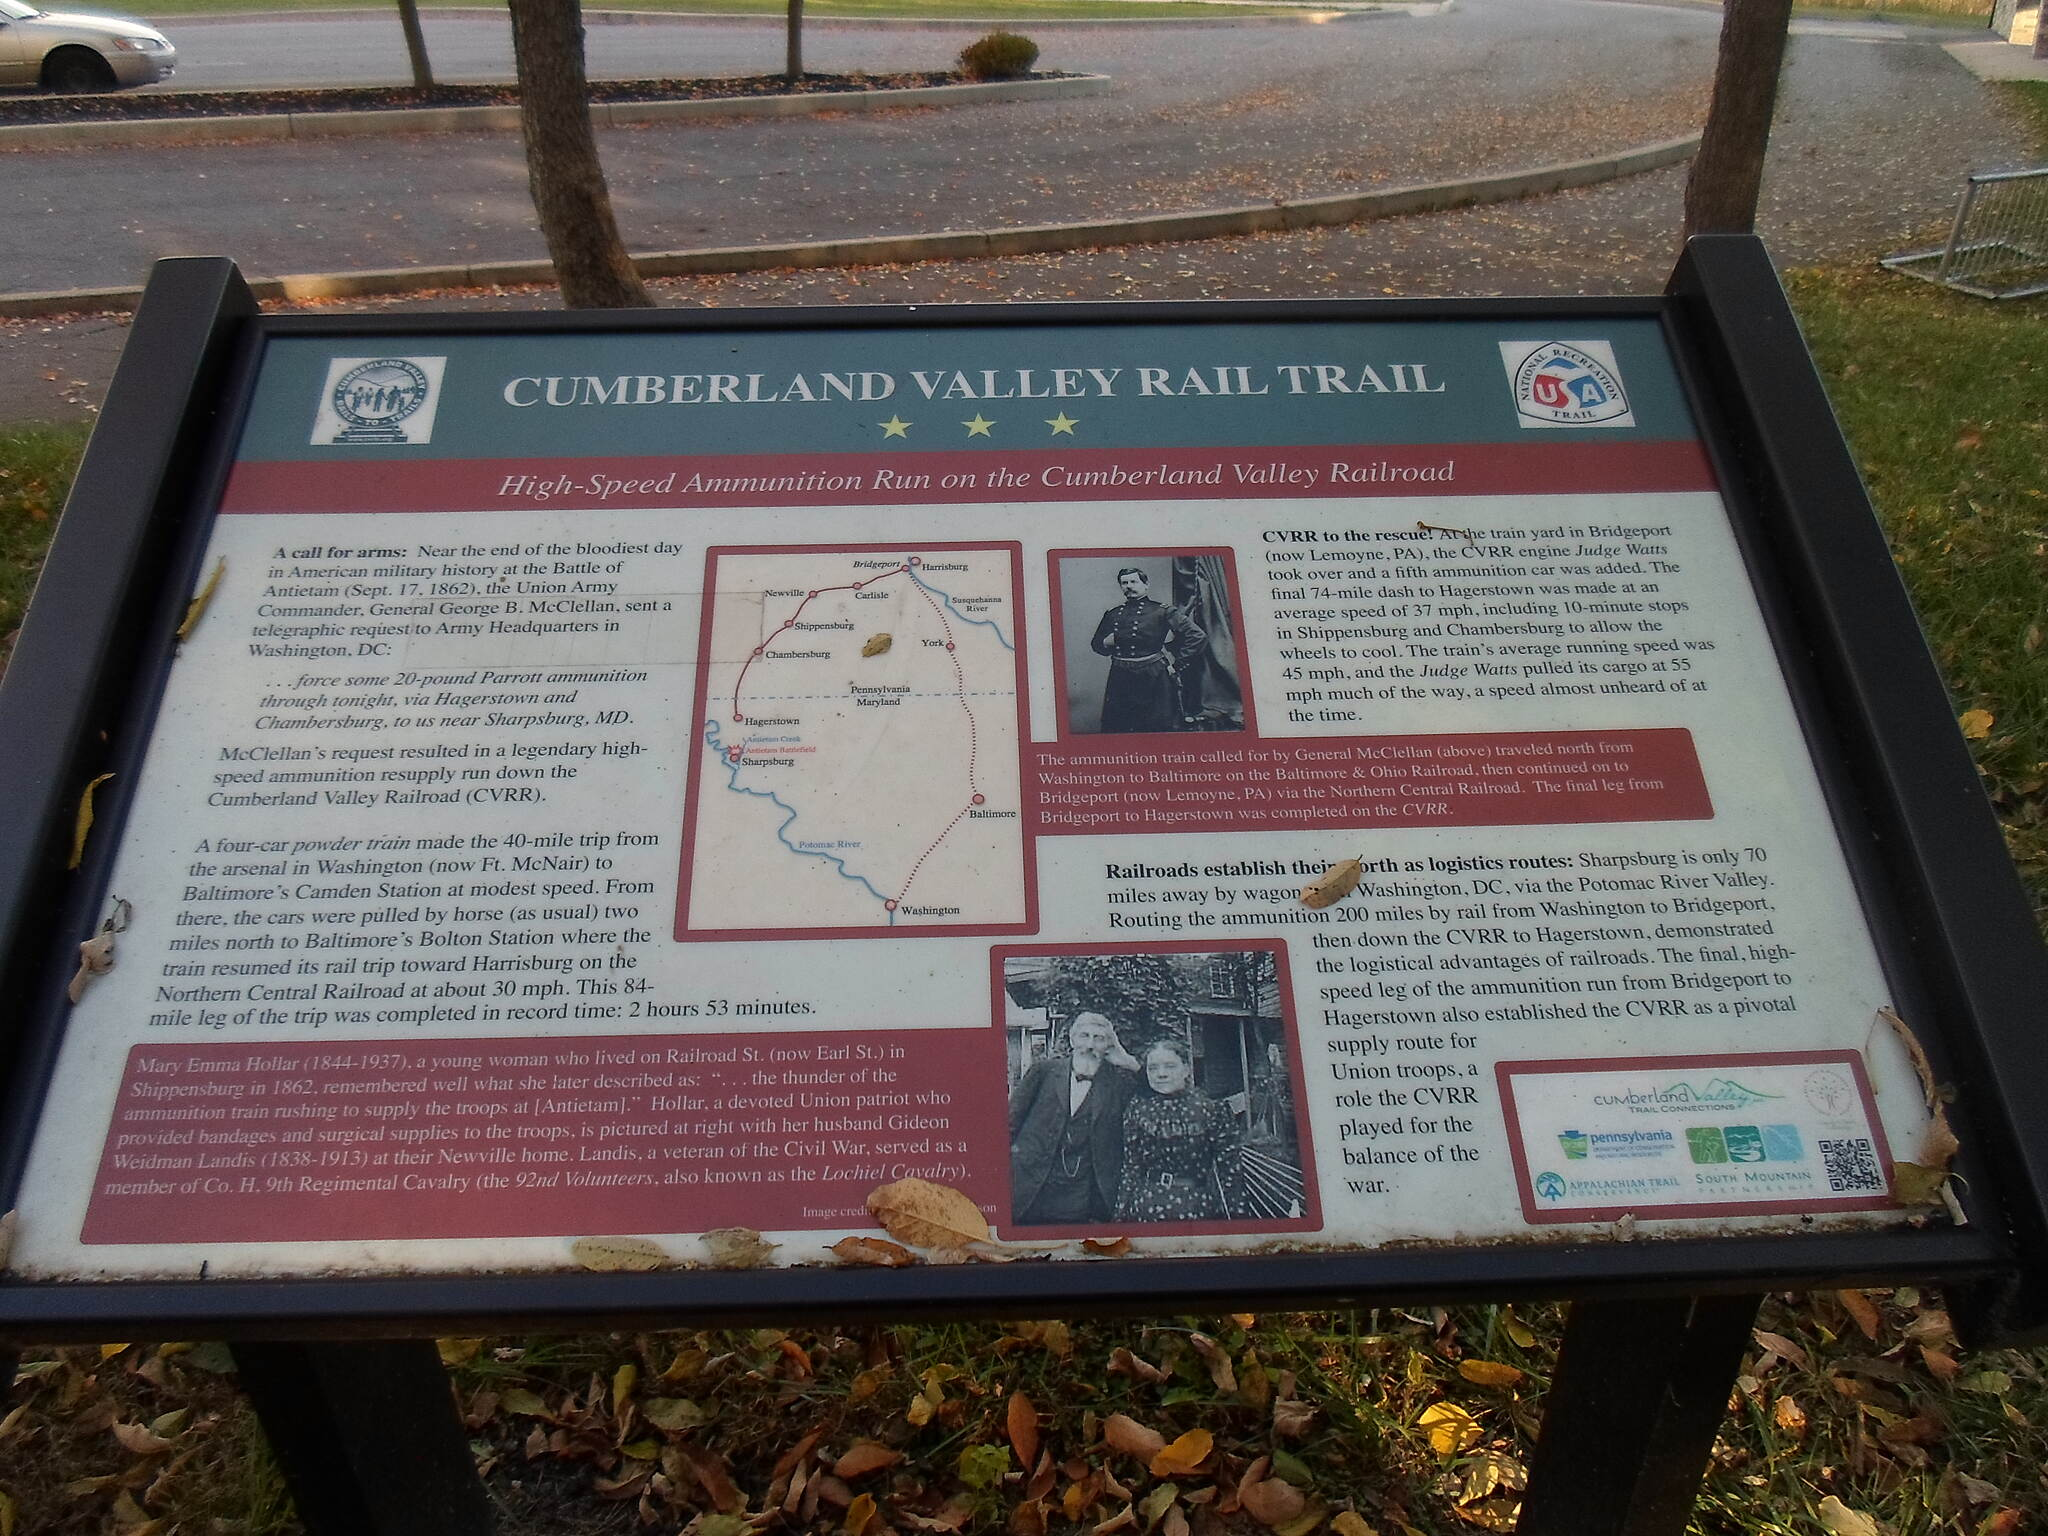 Cumberland Valley Rail Trail Cumberland Valley Rail Trail Sign detailing the RR's role in the Civil War.